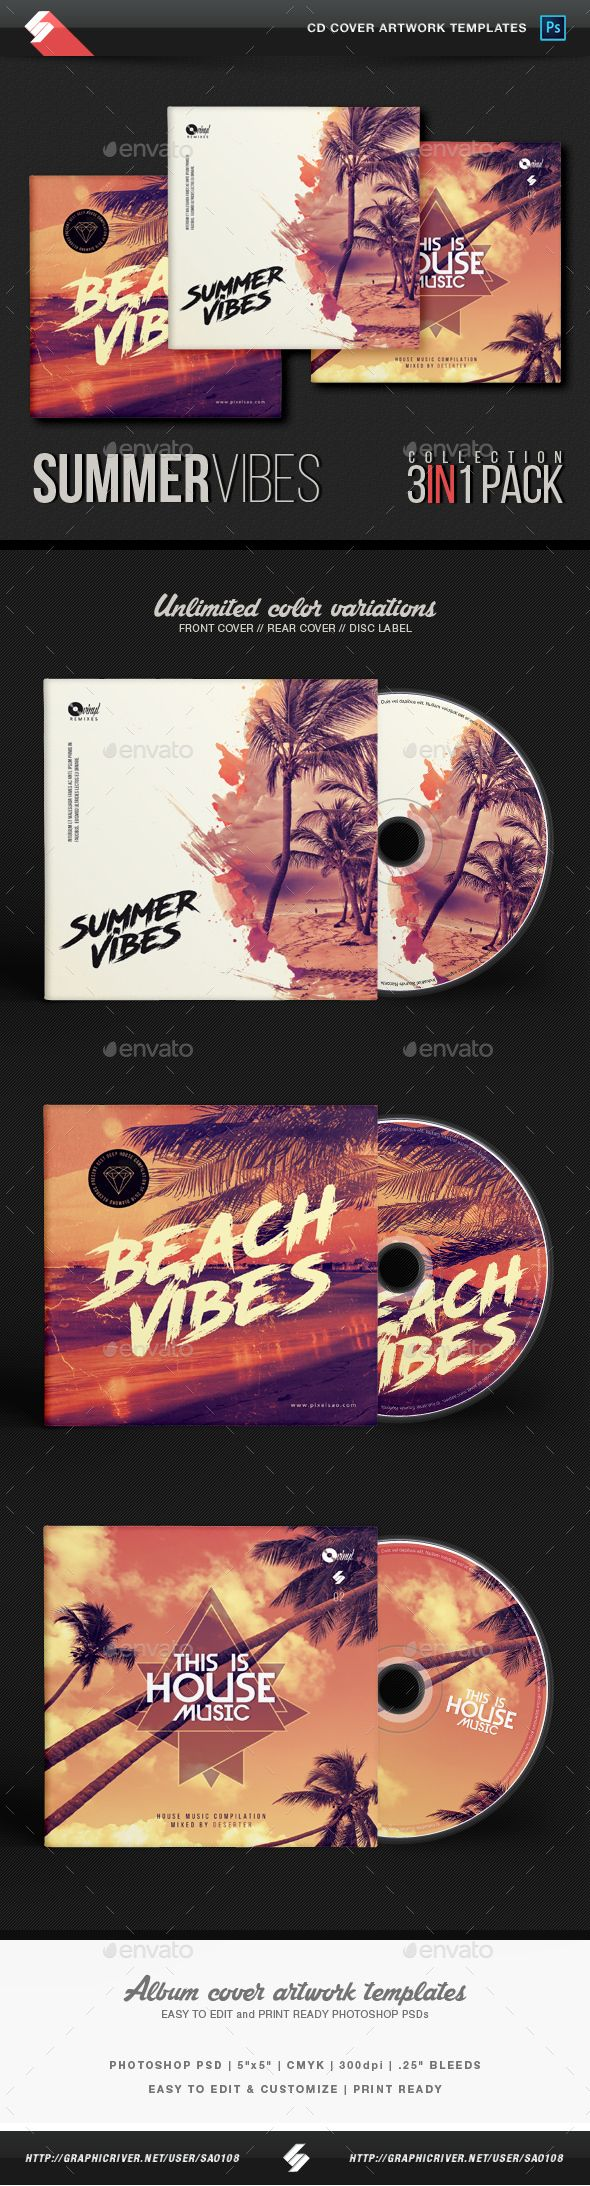 Summer Vibes - House Music CD Cover Templates Bundle CD / DVD album cover artwork templates, podcast image artworks – Creative summer beach collection – 3in1 pack – CD cover artwork templates for DJs and producers of electronic music like house, deep house, progressive, dubstep, drum and bass, electro, techno, tech-house, chillout, chillstep, chill-house, lounge, electronica, trance, minimal,...etc. Could be used also like digital release cover images on soundcloud, mixcloud, ...etc.